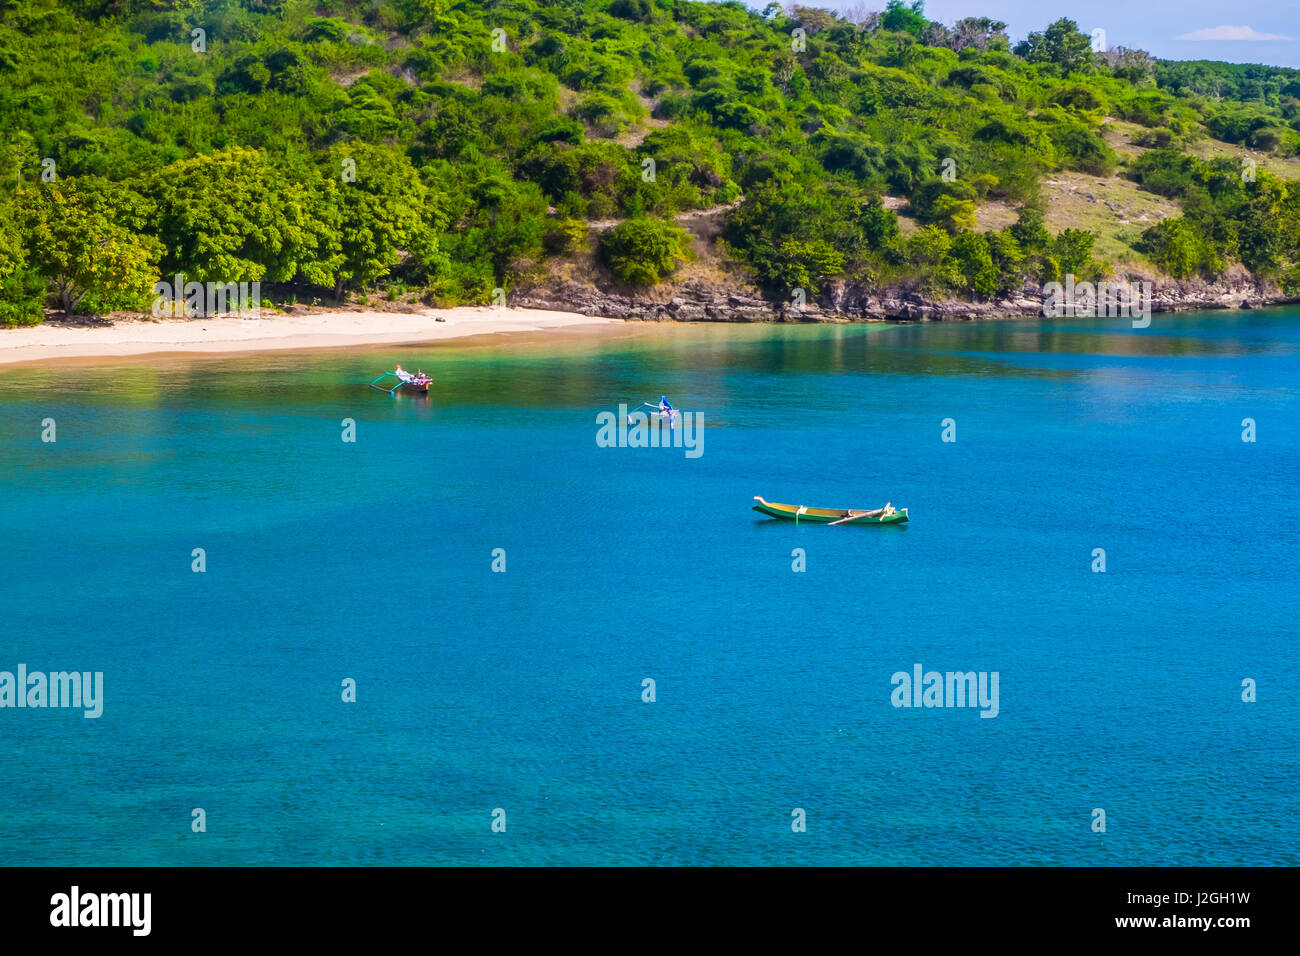 Tropical exotic islands in Lombok Indonesia. - Stock Image